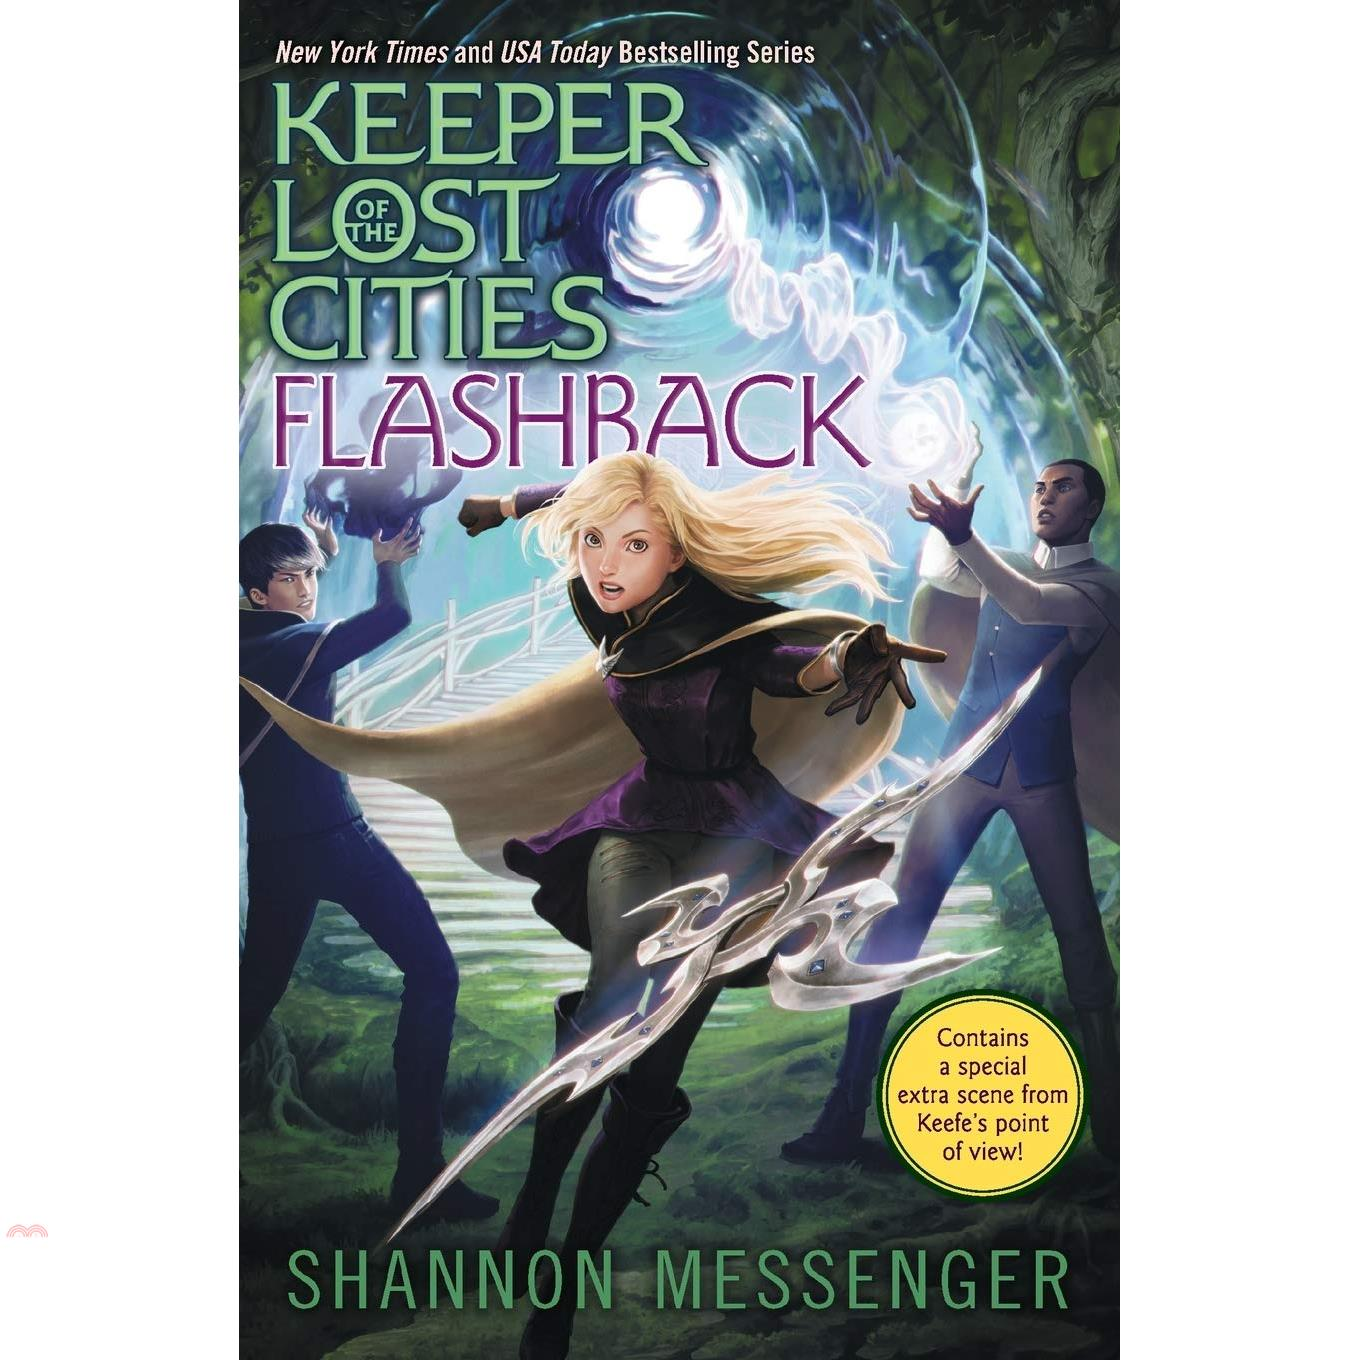 書名:Keeper of the Lost Cities #7: Flashback (平裝本)(美國版)系列:Keeper of the Lost Cities定價:350元ISBN13:97814